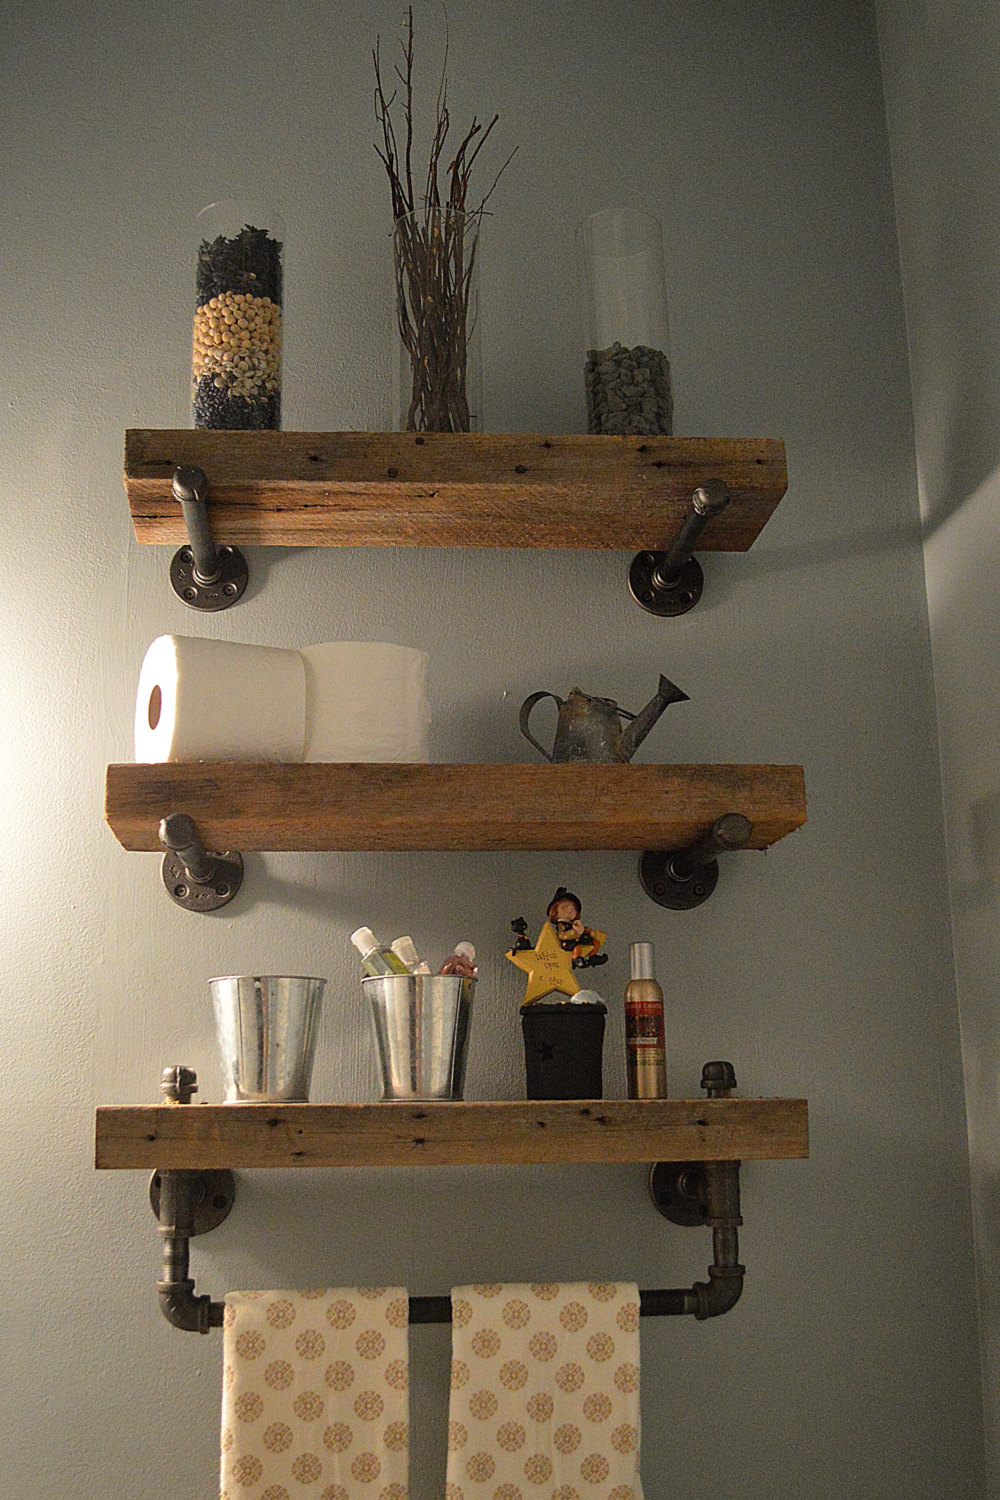 3 heavy plank shelves with industrial hardware